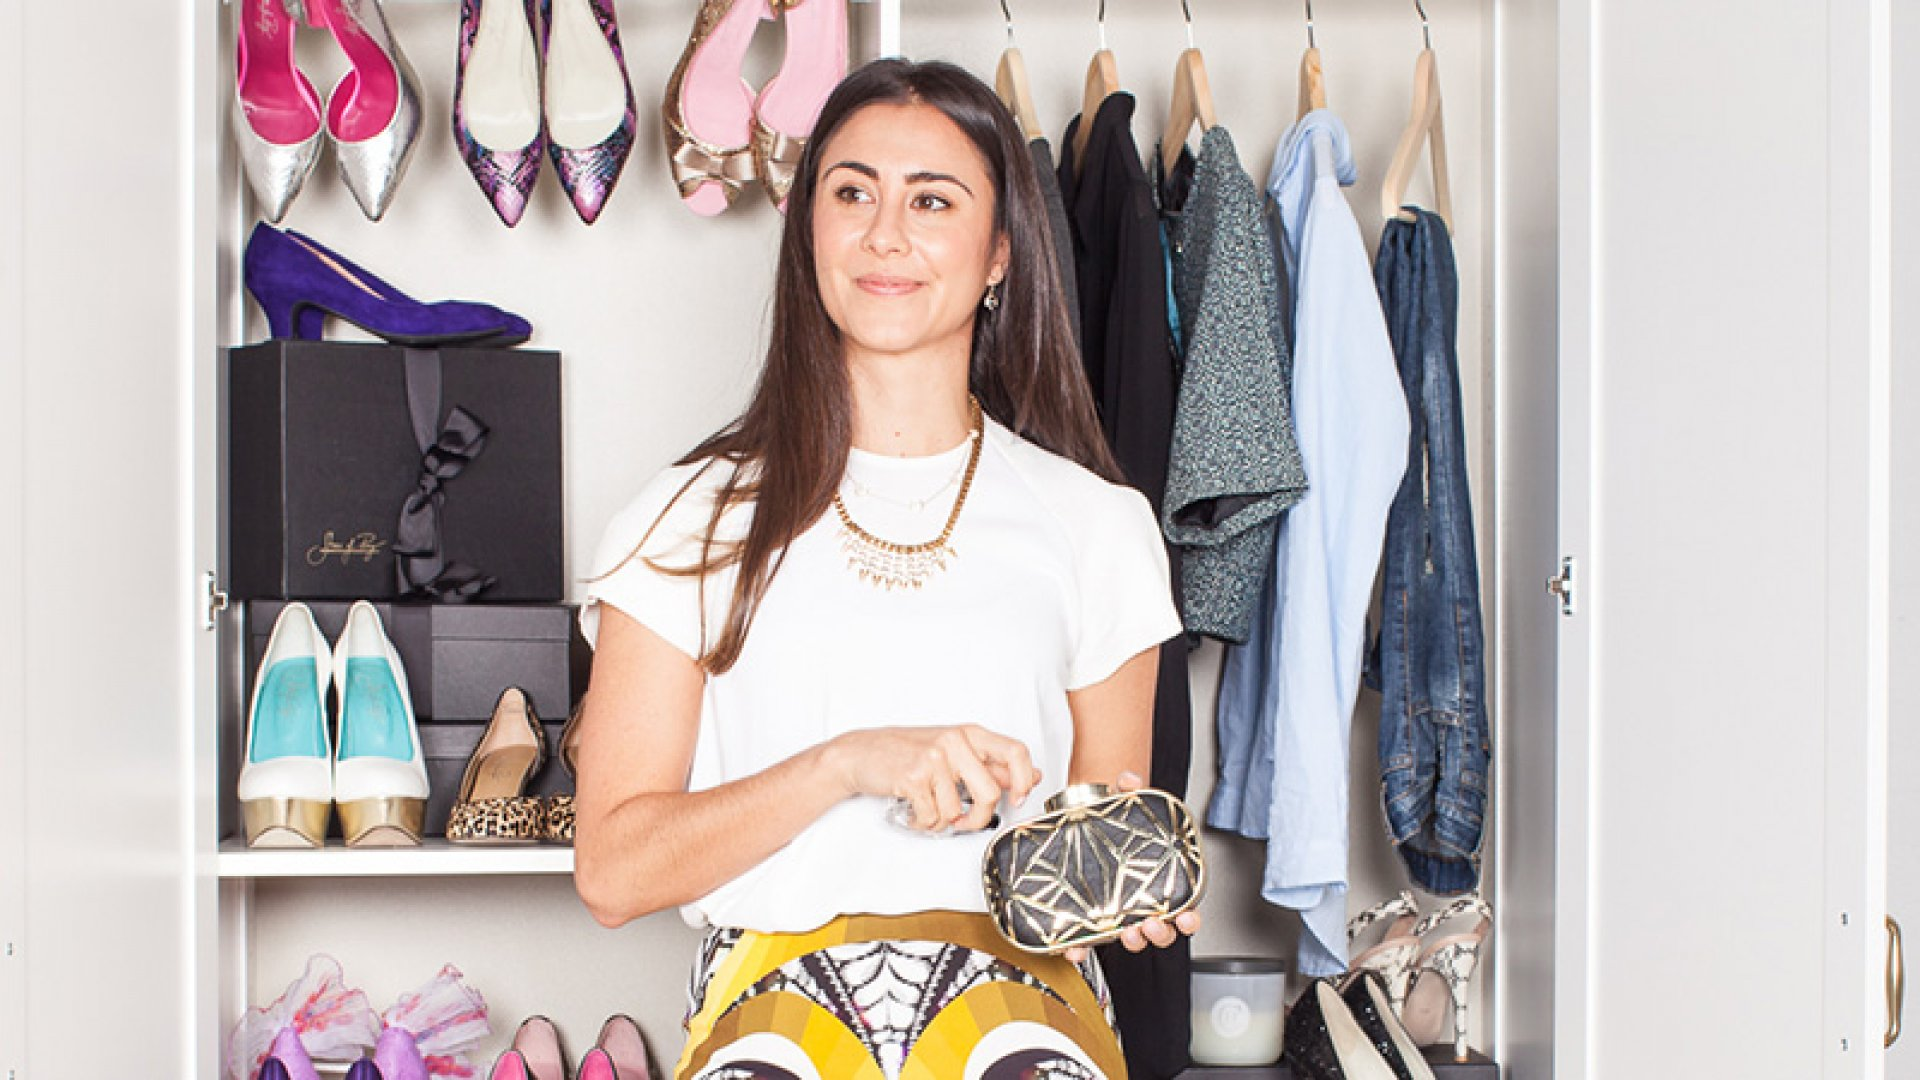 Shoes of Prey co-founder Jodie Fox wants to reinvent your shopping experience.